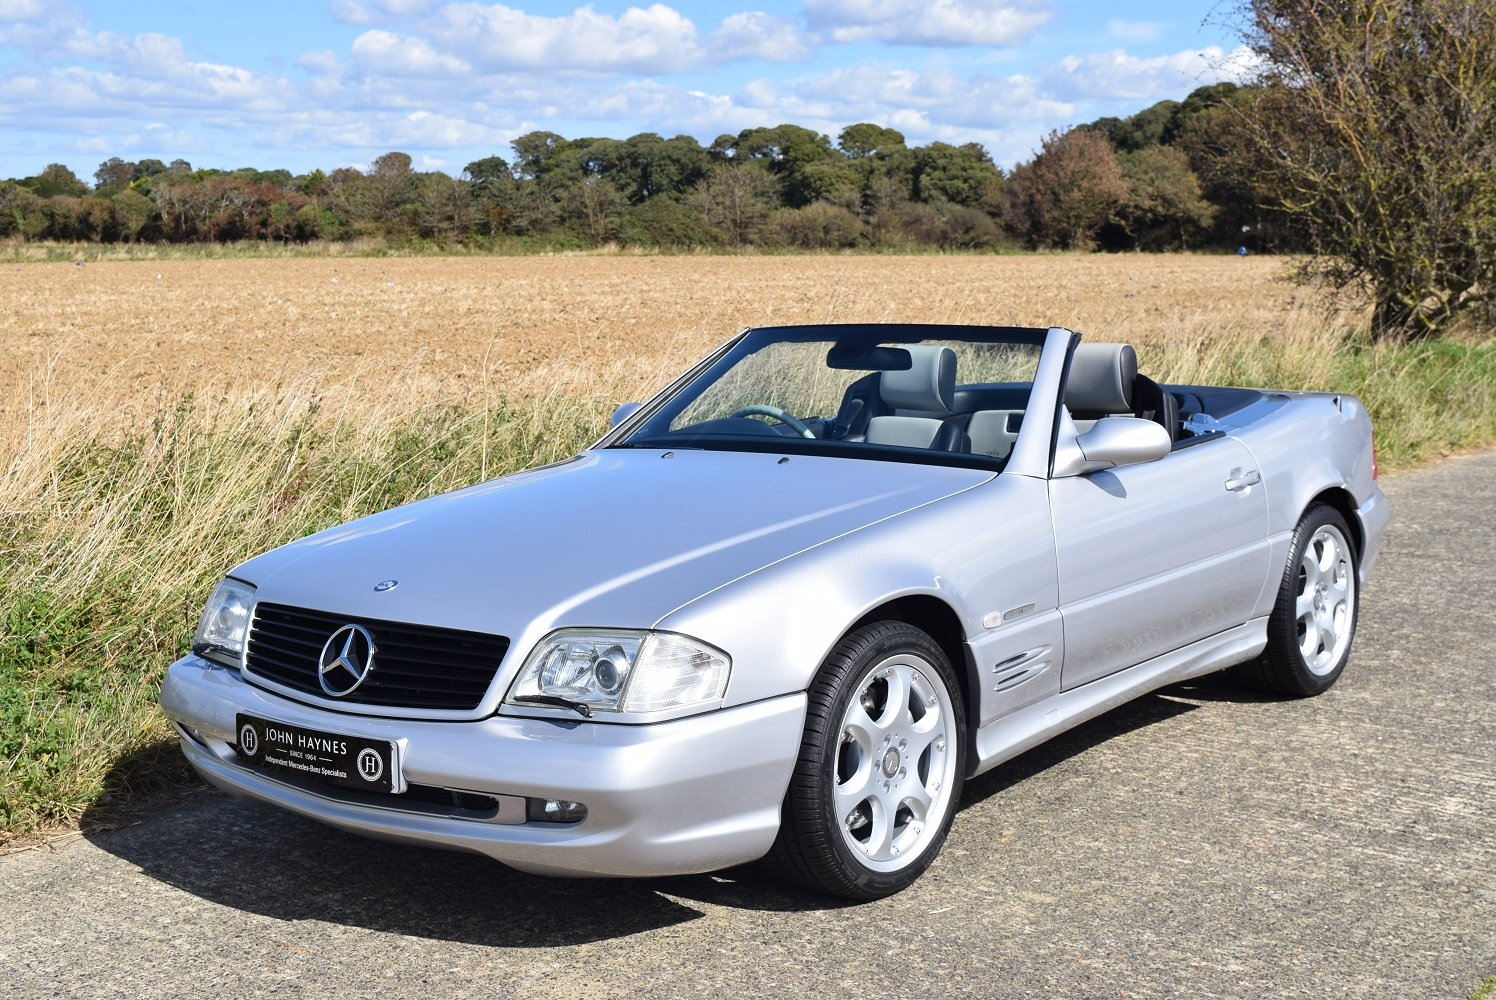 2001 Mercedes-Benz SL500 Silver Arrow For Sale (picture 1 of 6)